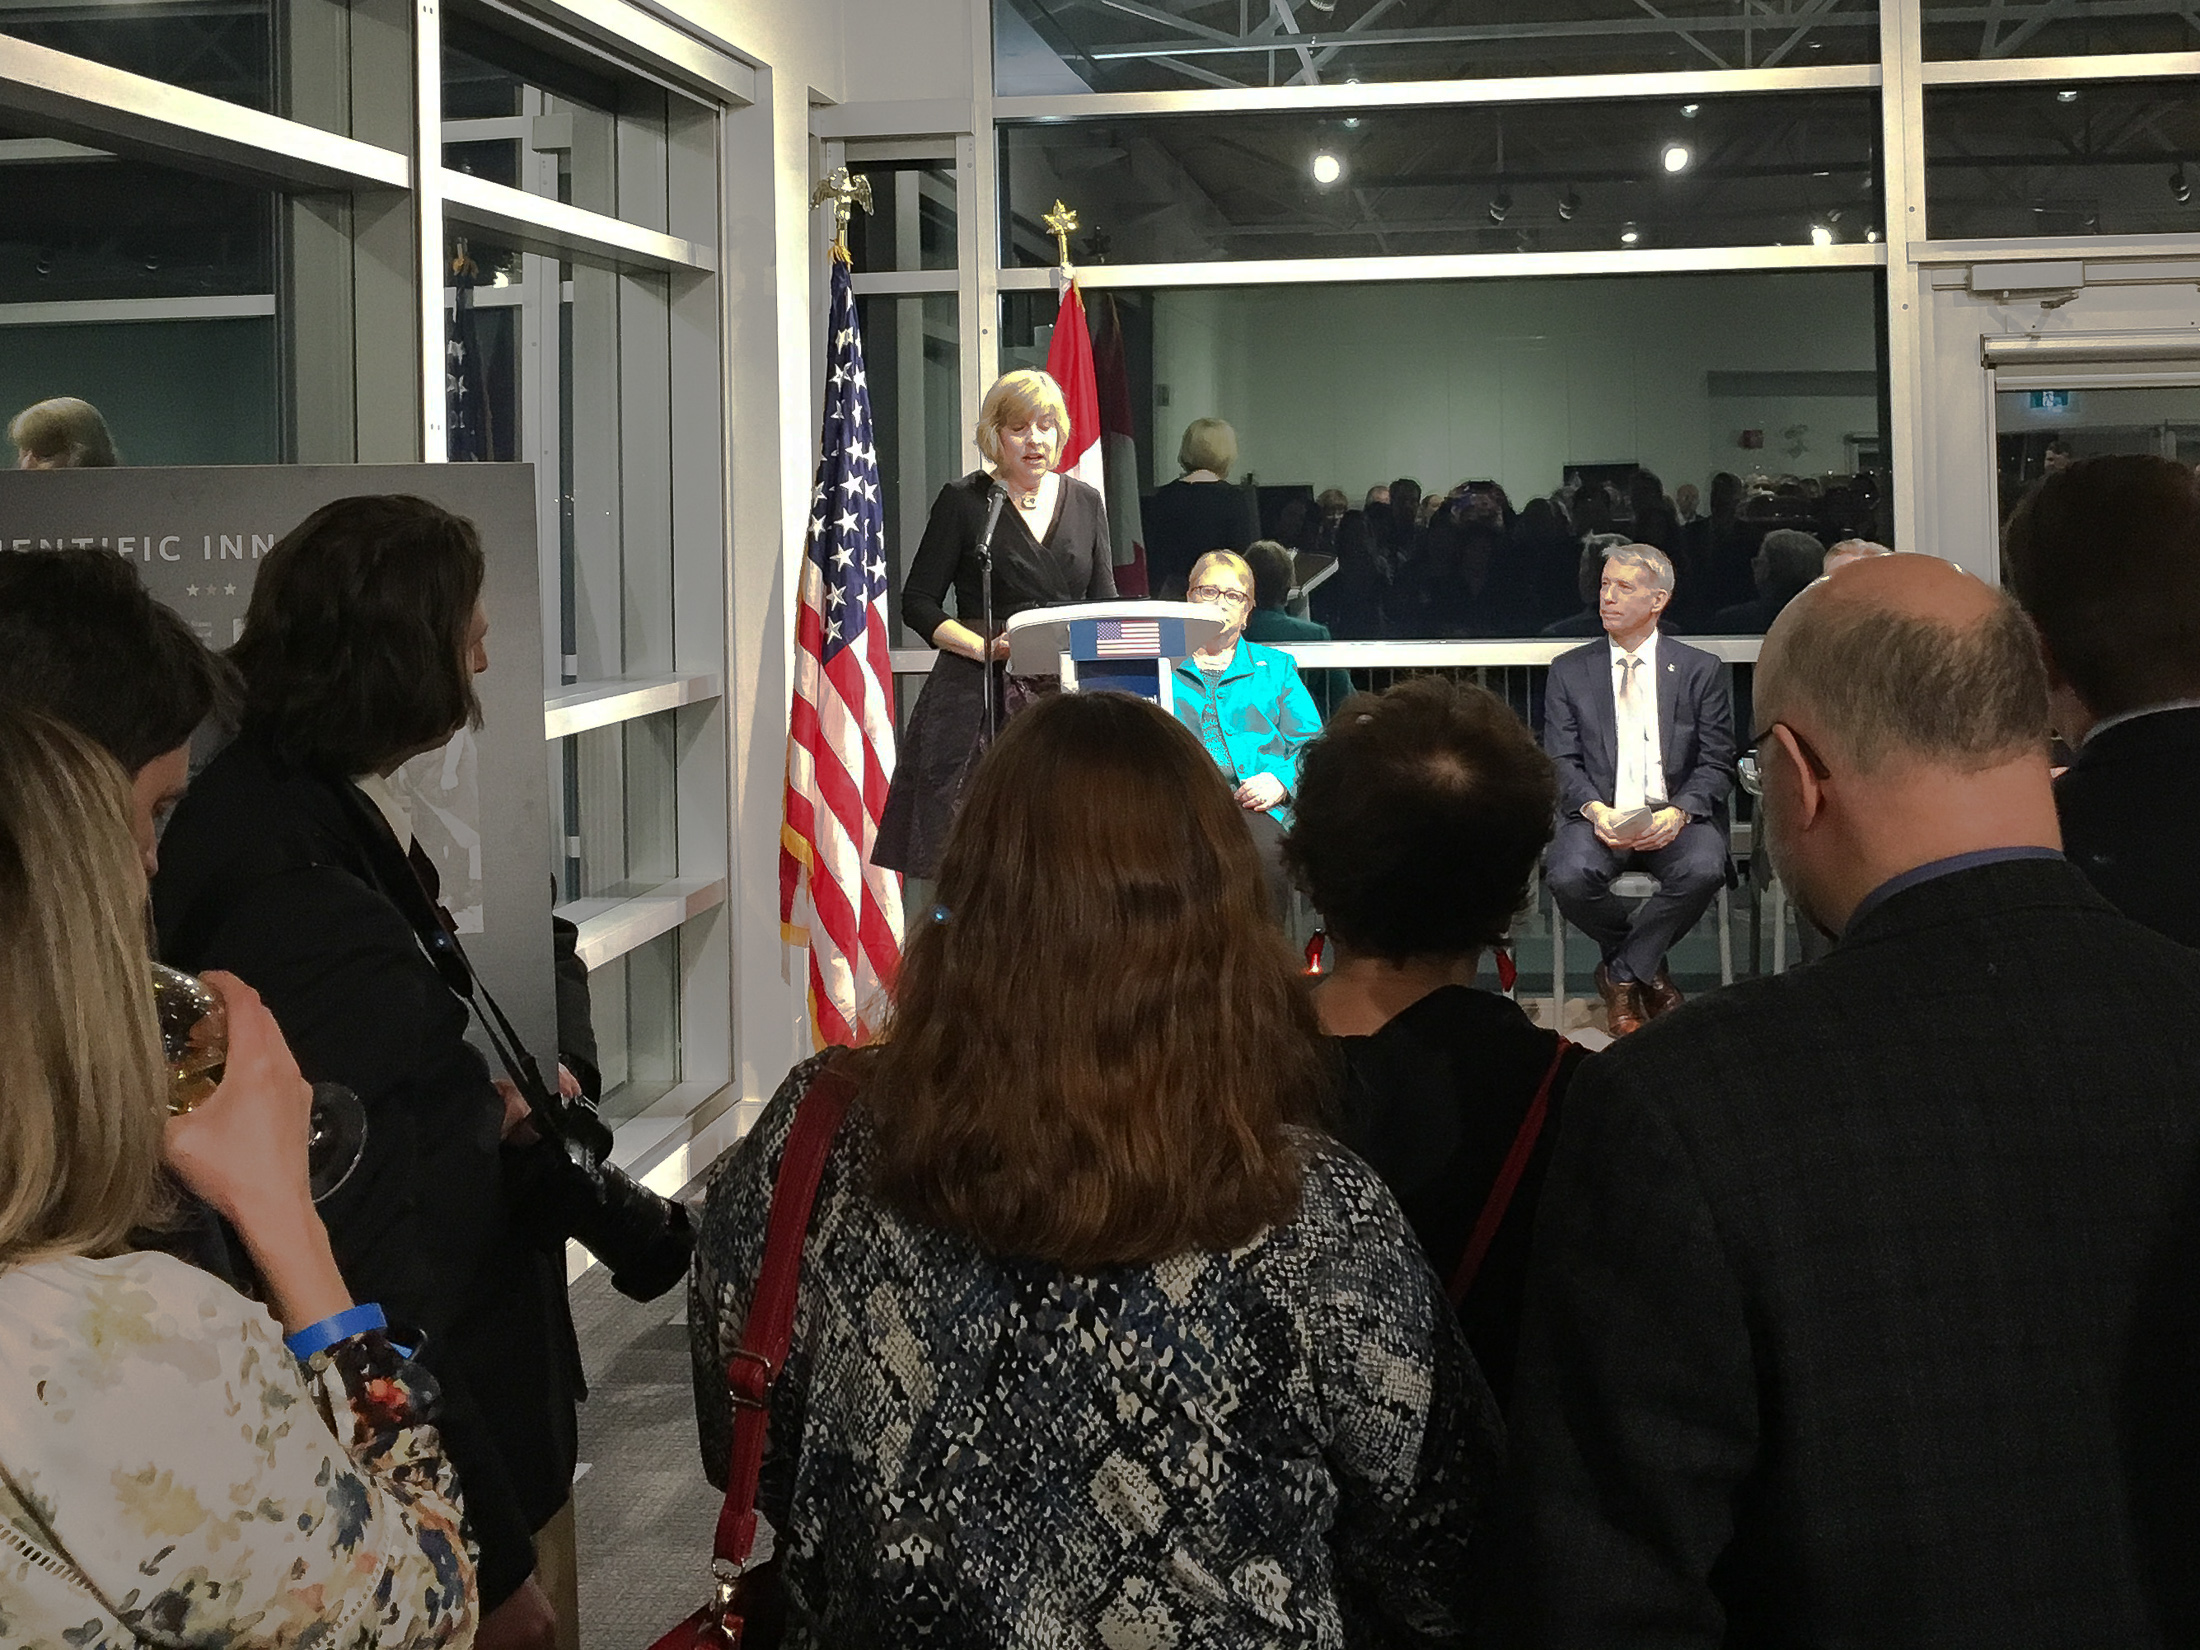 United States acting ambassador Elizabeth Moore Aubin offers remarks at the opening of the exhibition.